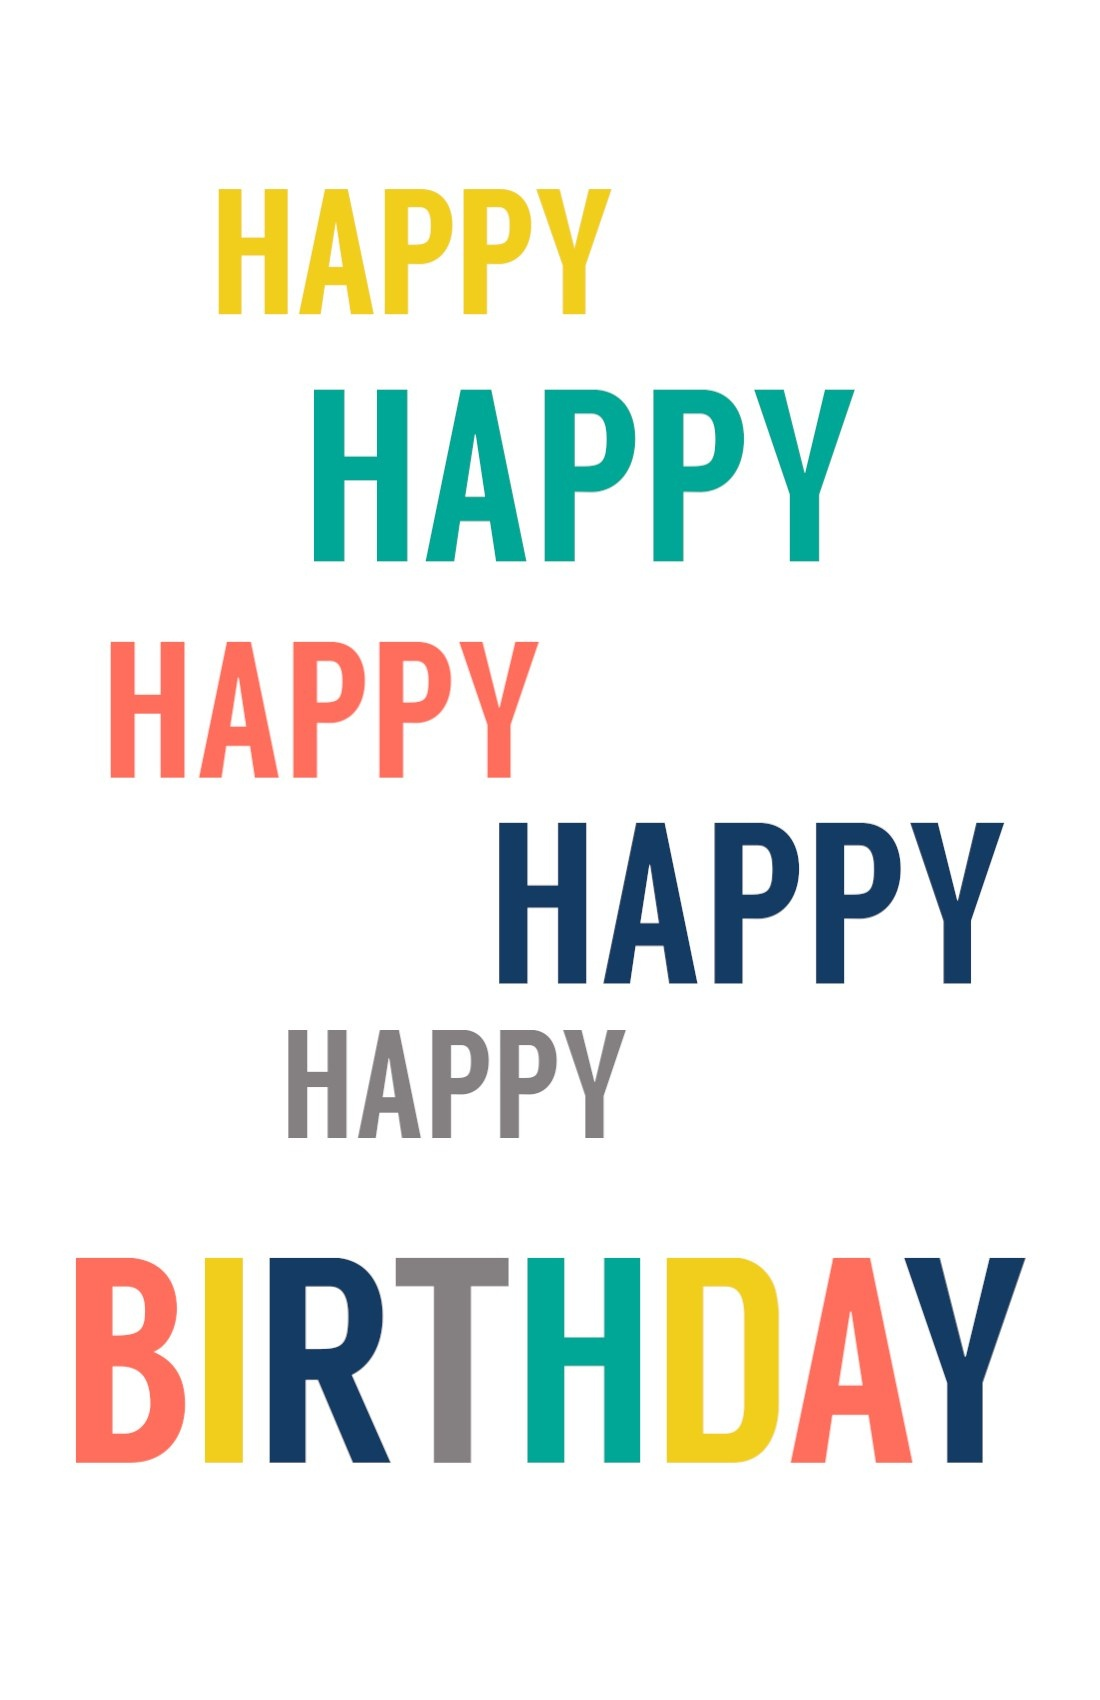 Free Printable Birthday Cards - Paper Trail Design - Free Printable Birthday Cards For Dad